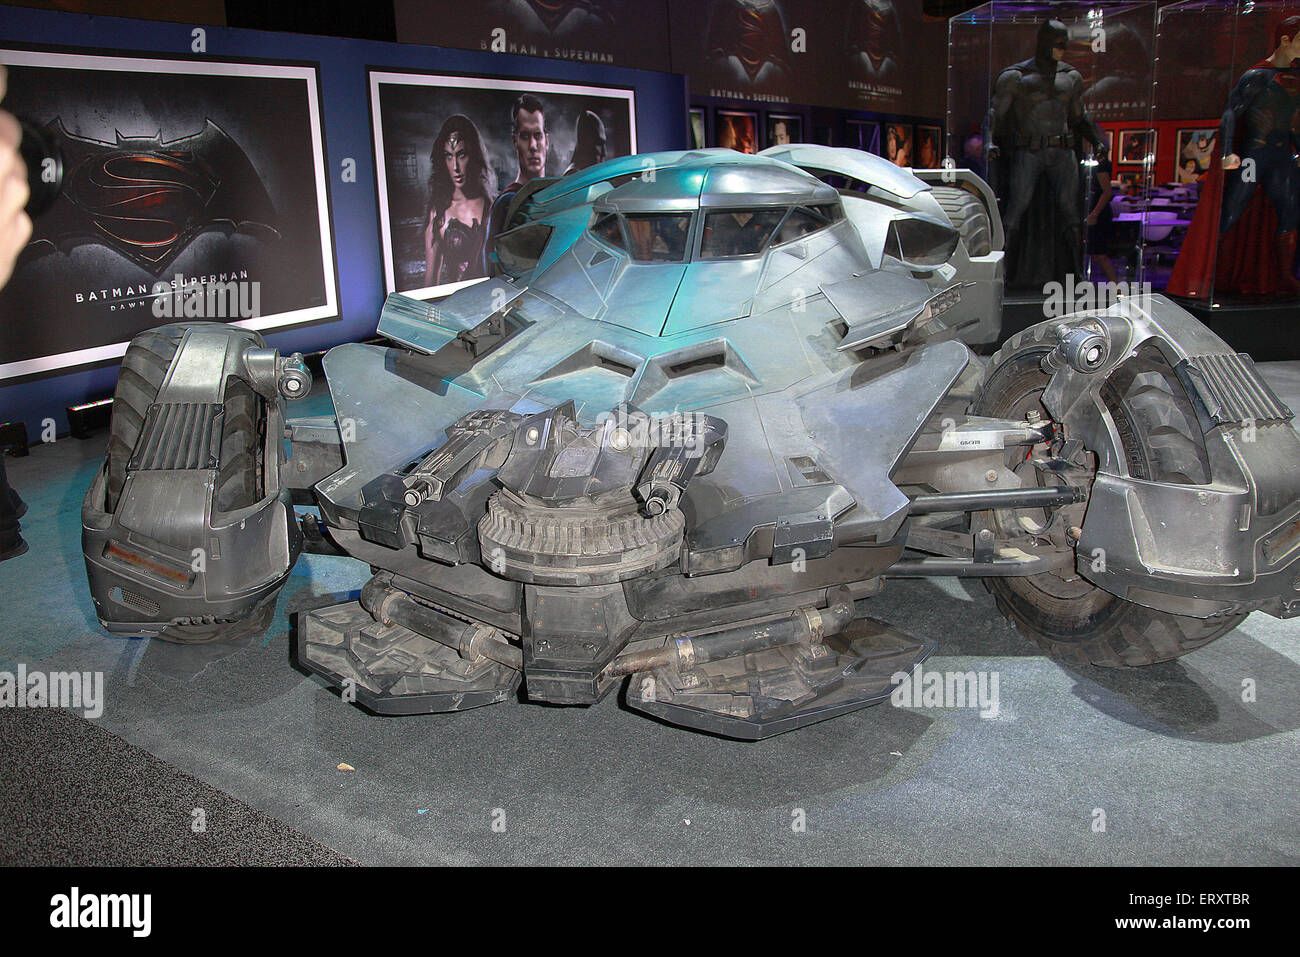 Las Vegas, Nevada, USA. 9th June, 2015. Warner Brothers Consumer Products unveils the Batmobile from Batman vs Superman:Dawn - Stock Image